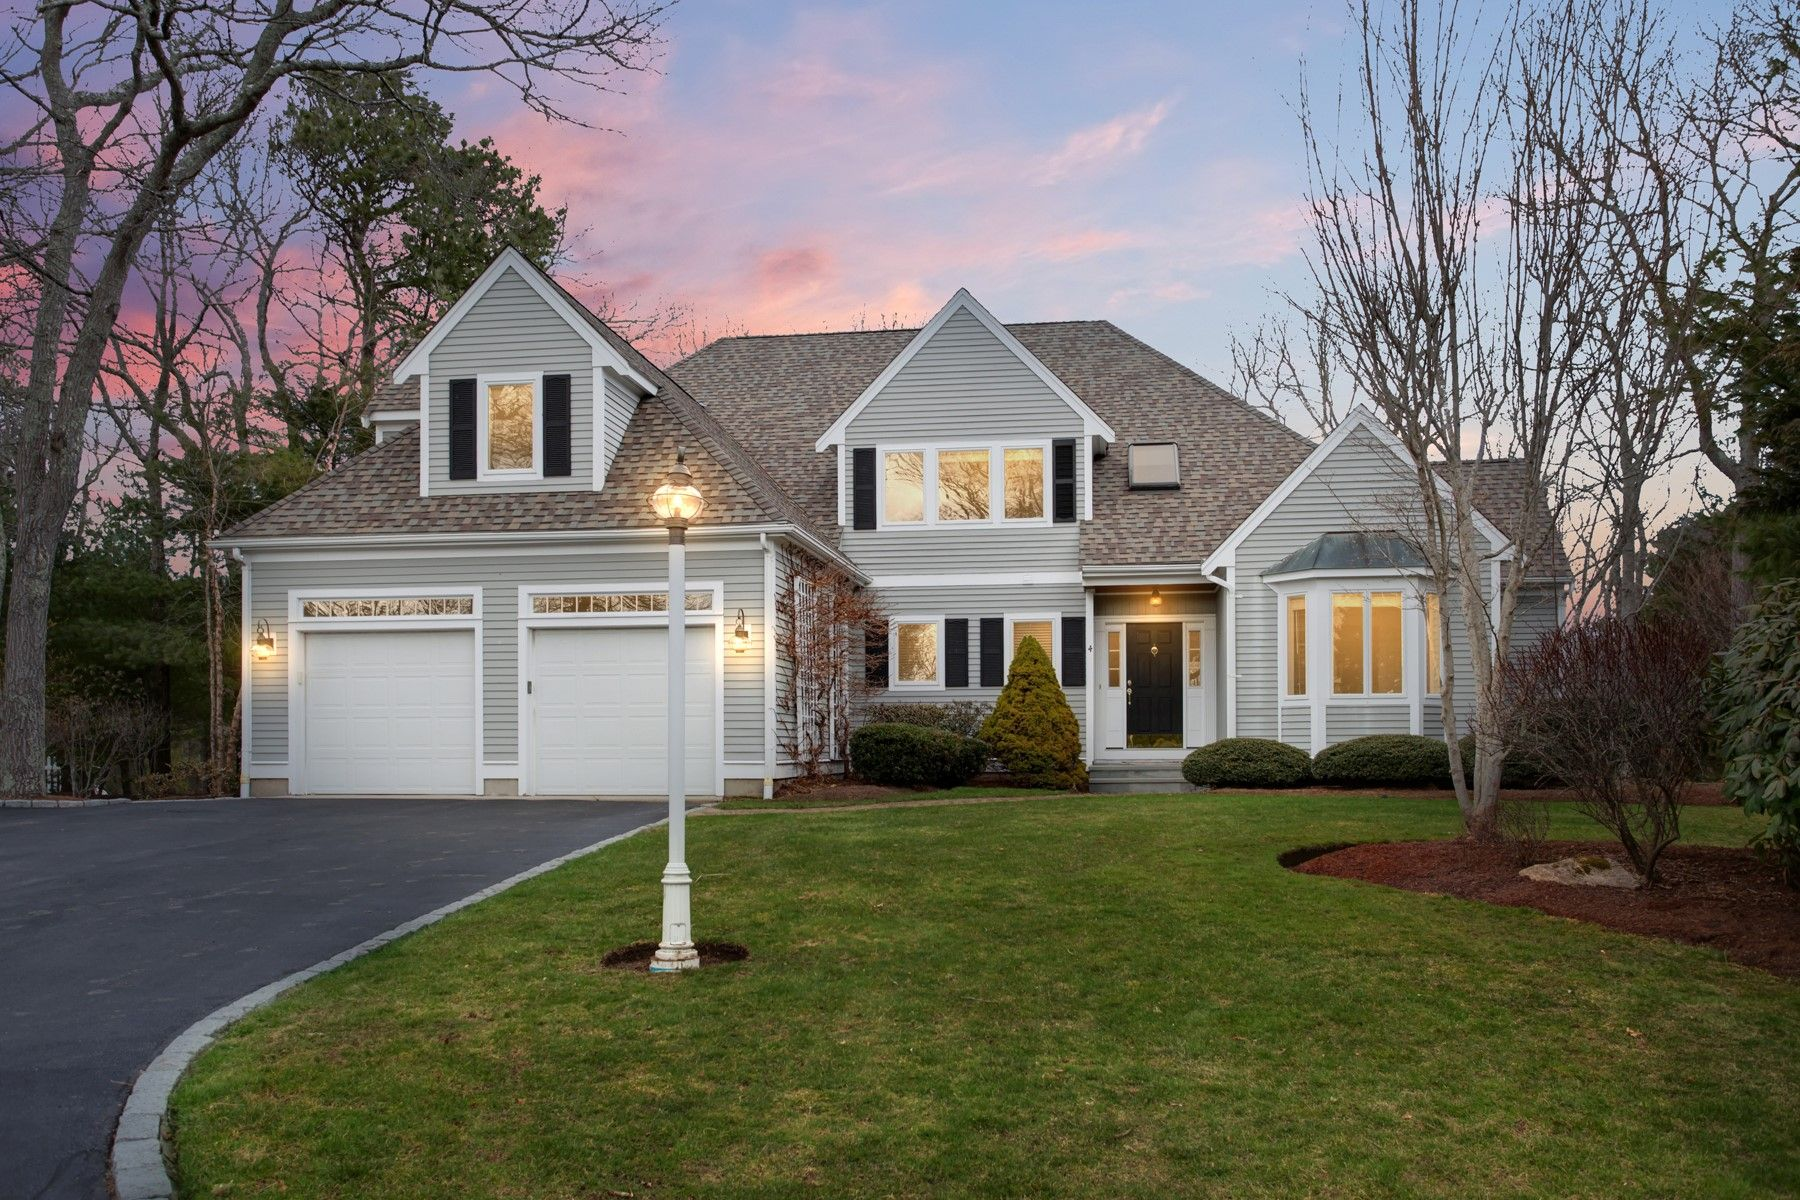 Single Family Homes for Sale at 4 Firethorn Lane, Sandwich, MA 4 Firethorn Lane Sandwich, Massachusetts 02563 United States